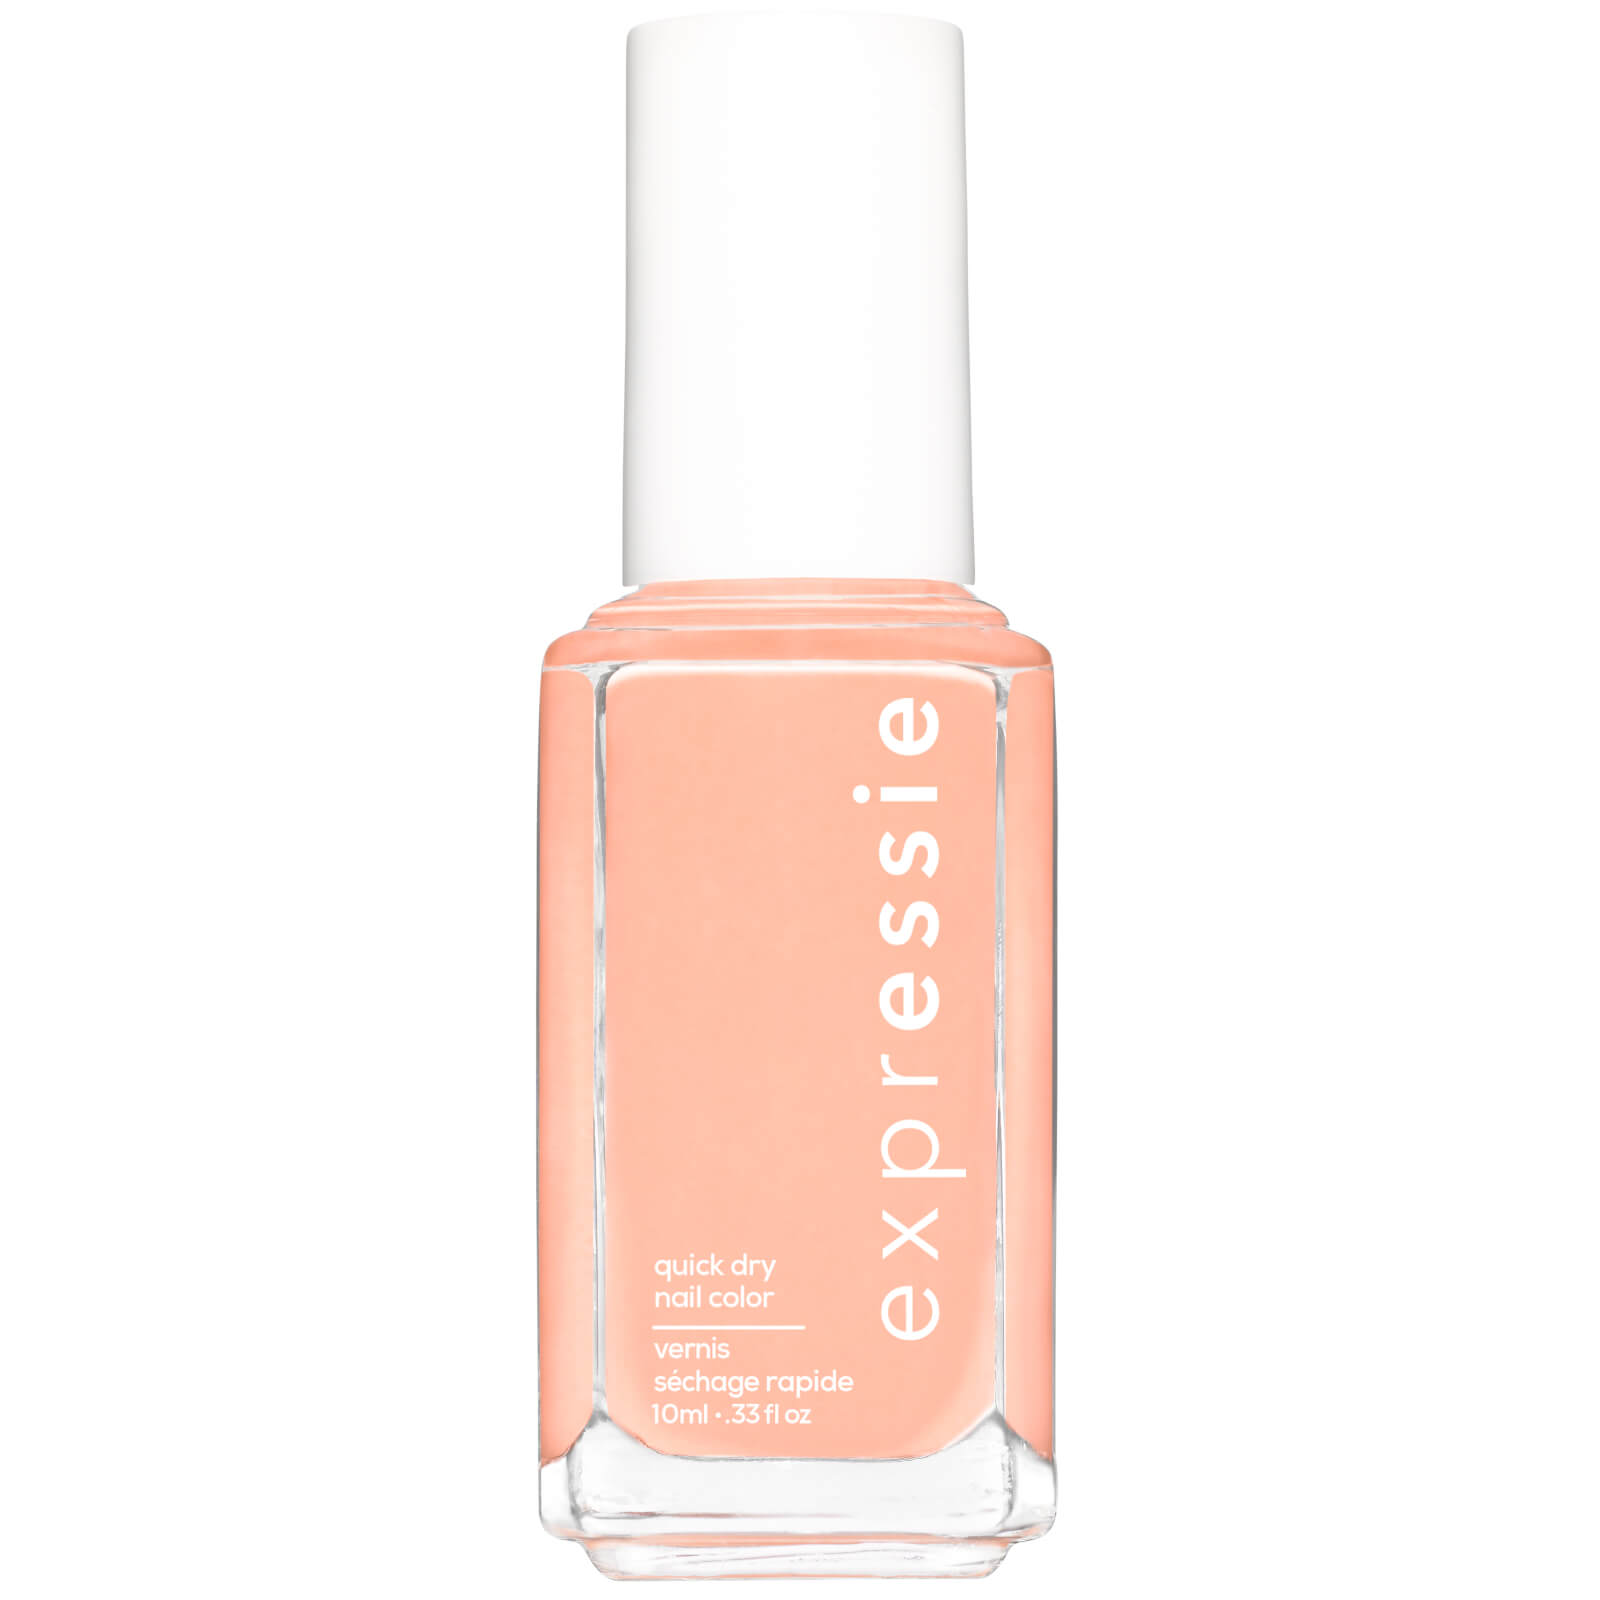 essie Expressie Quick Dry Formula Chip Resistant Nail Polish 10ml (Various Shades) - 130 All Things OOO